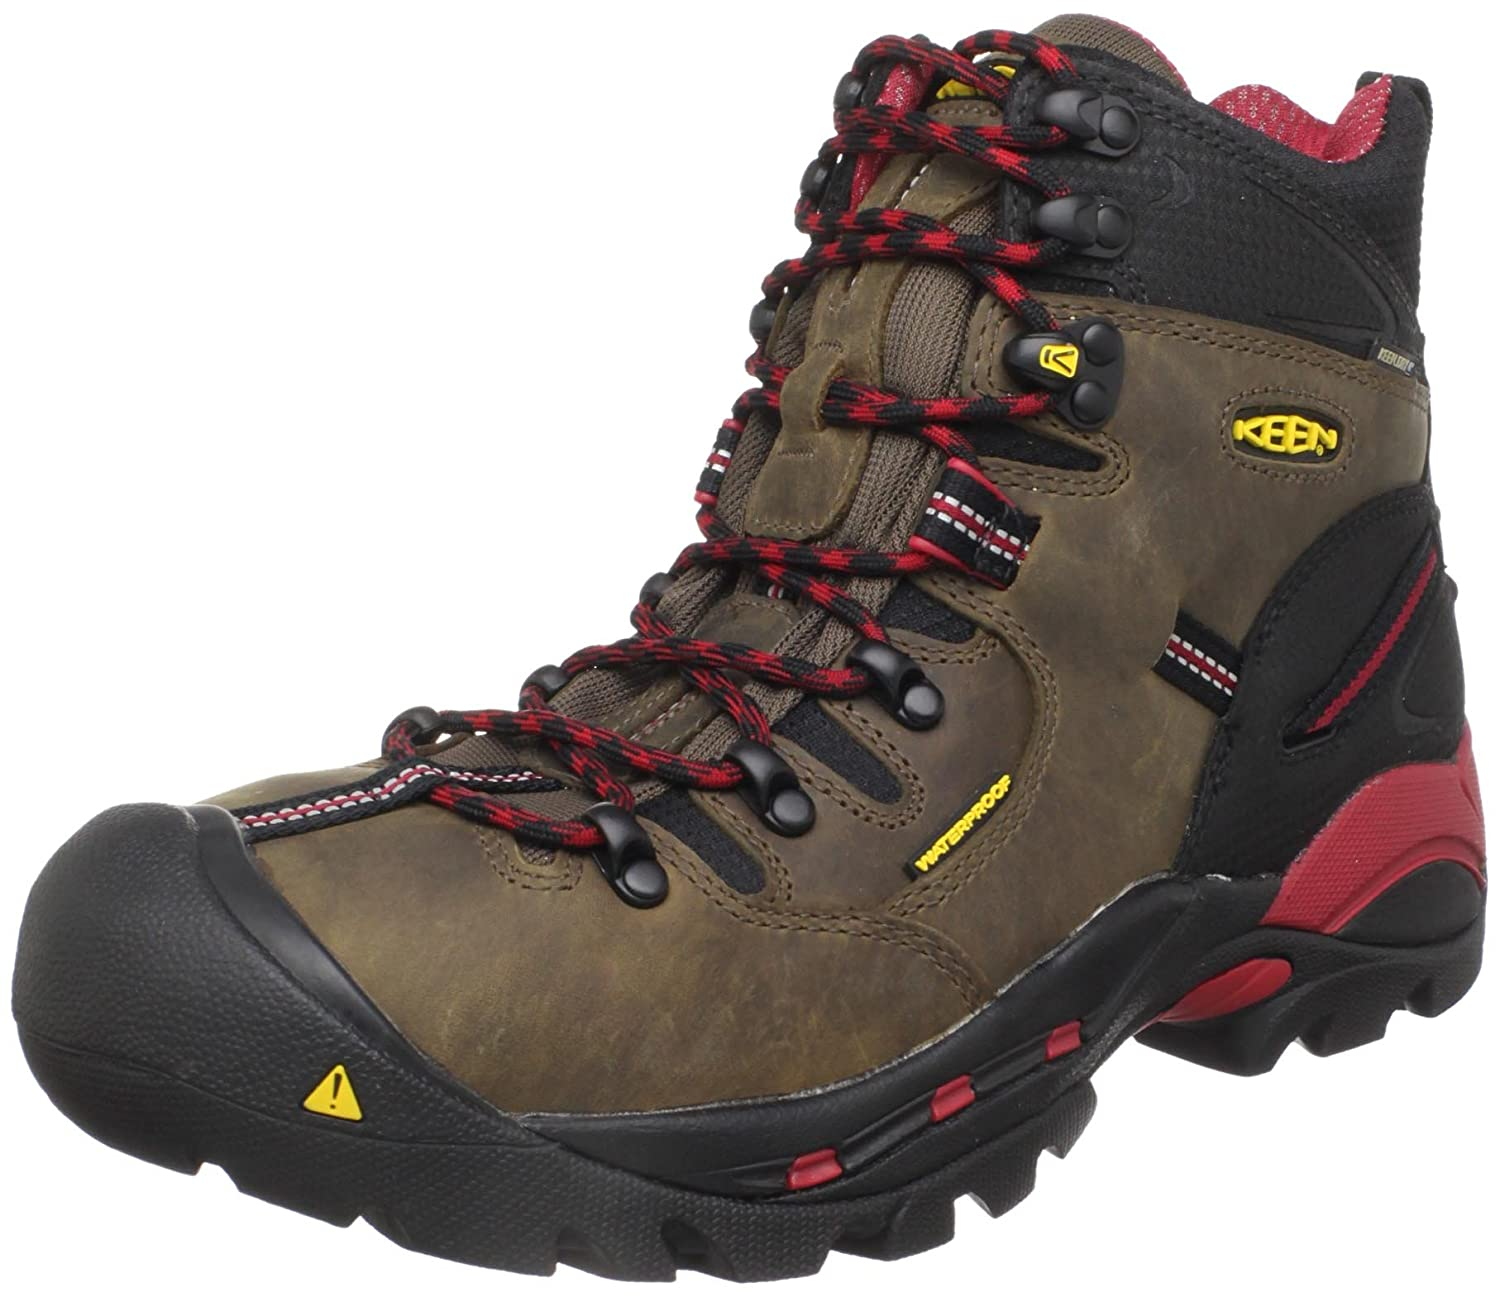 Keen Utility メンズ 1007025 バイソン 8.5 mens_us 8.5 mens_usバイソン B004LE7XEW